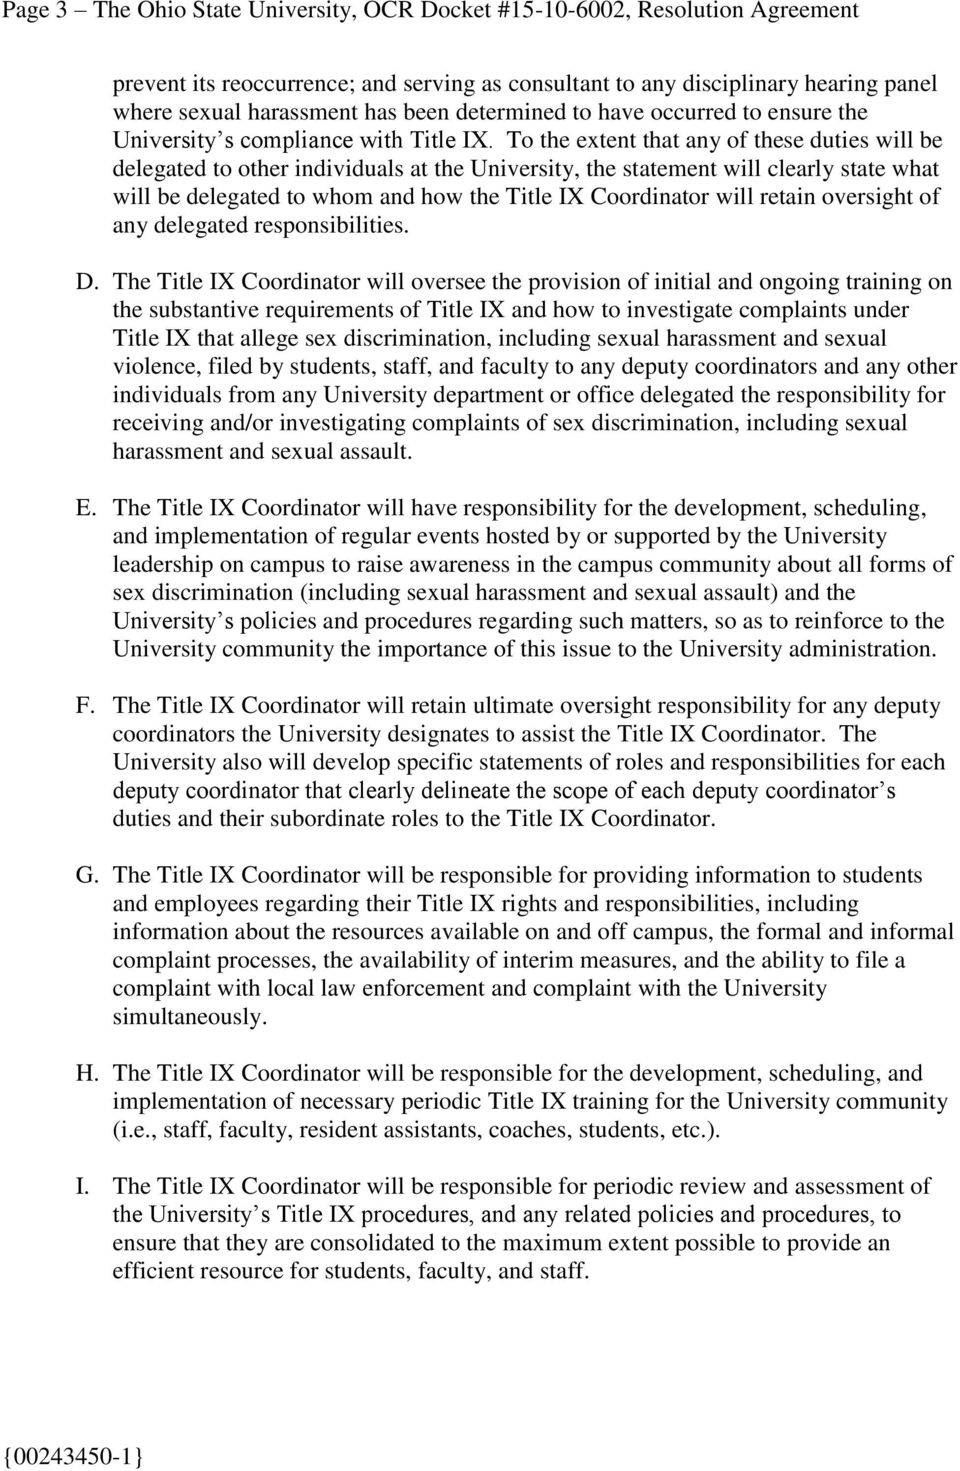 To the extent that any of these duties will be delegated to other individuals at the University, the statement will clearly state what will be delegated to whom and how the Title IX Coordinator will